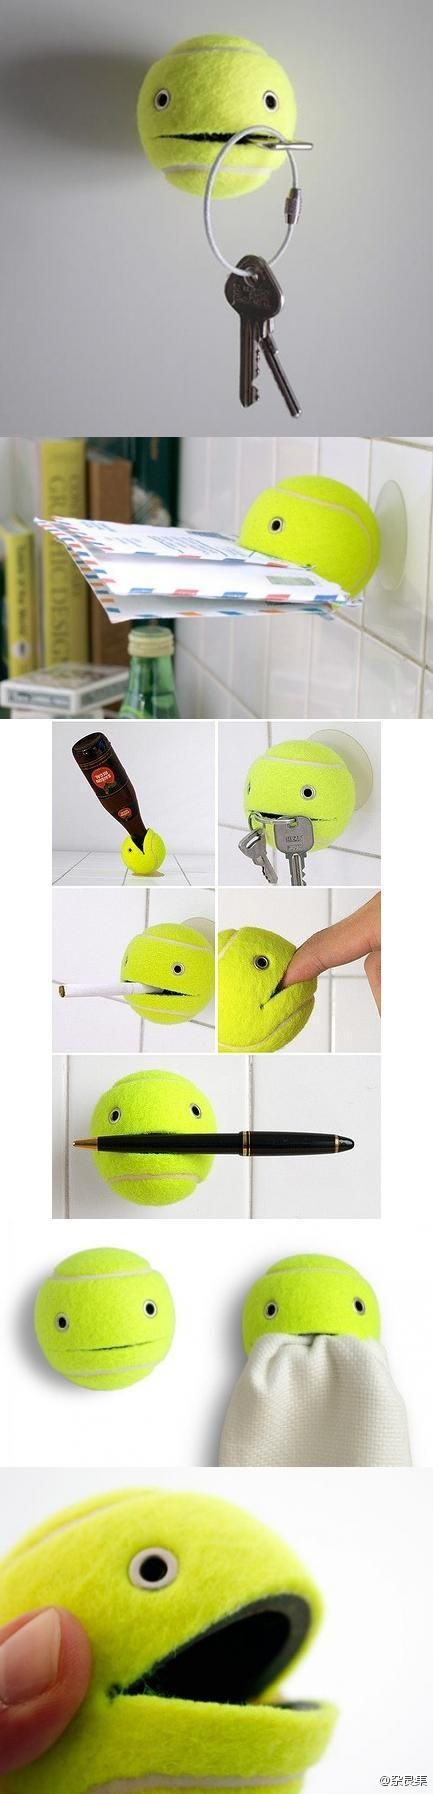 Tennis ball holder